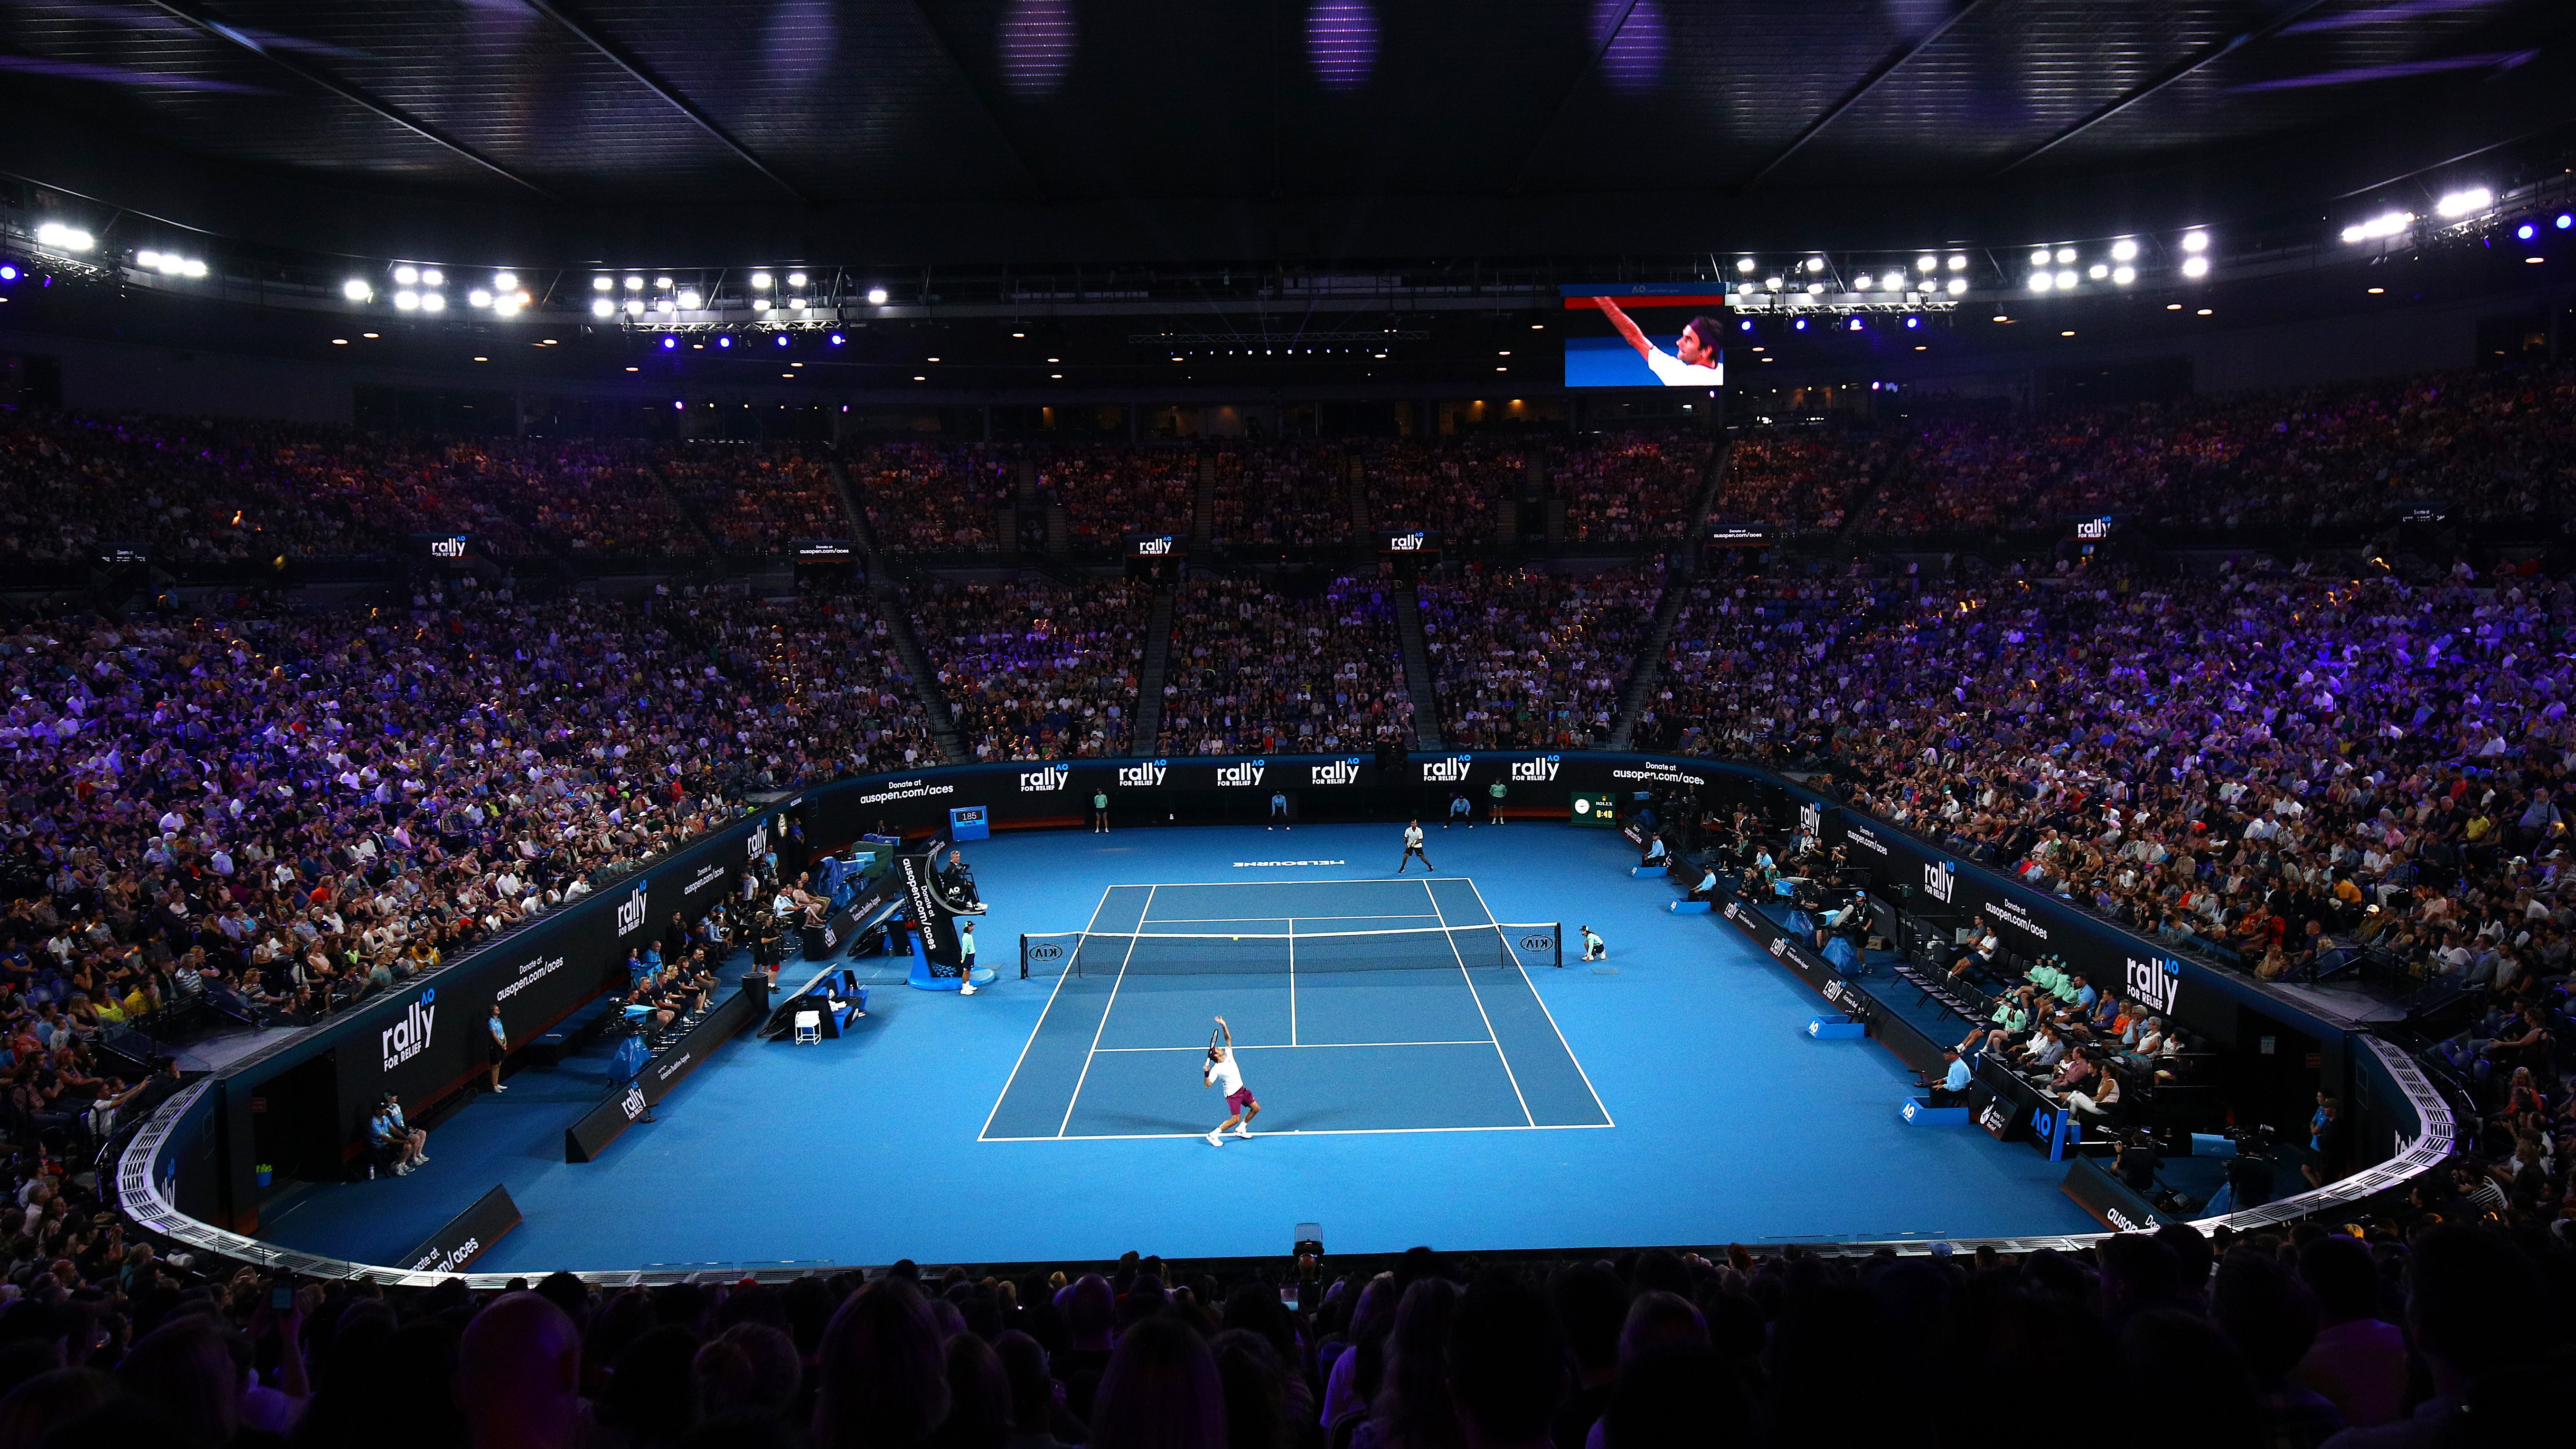 Australian Open Live Stream How To Watch 2020 Finals Tennis Online From Anywhere In 2020 Australian Open Tennis Online Open Live